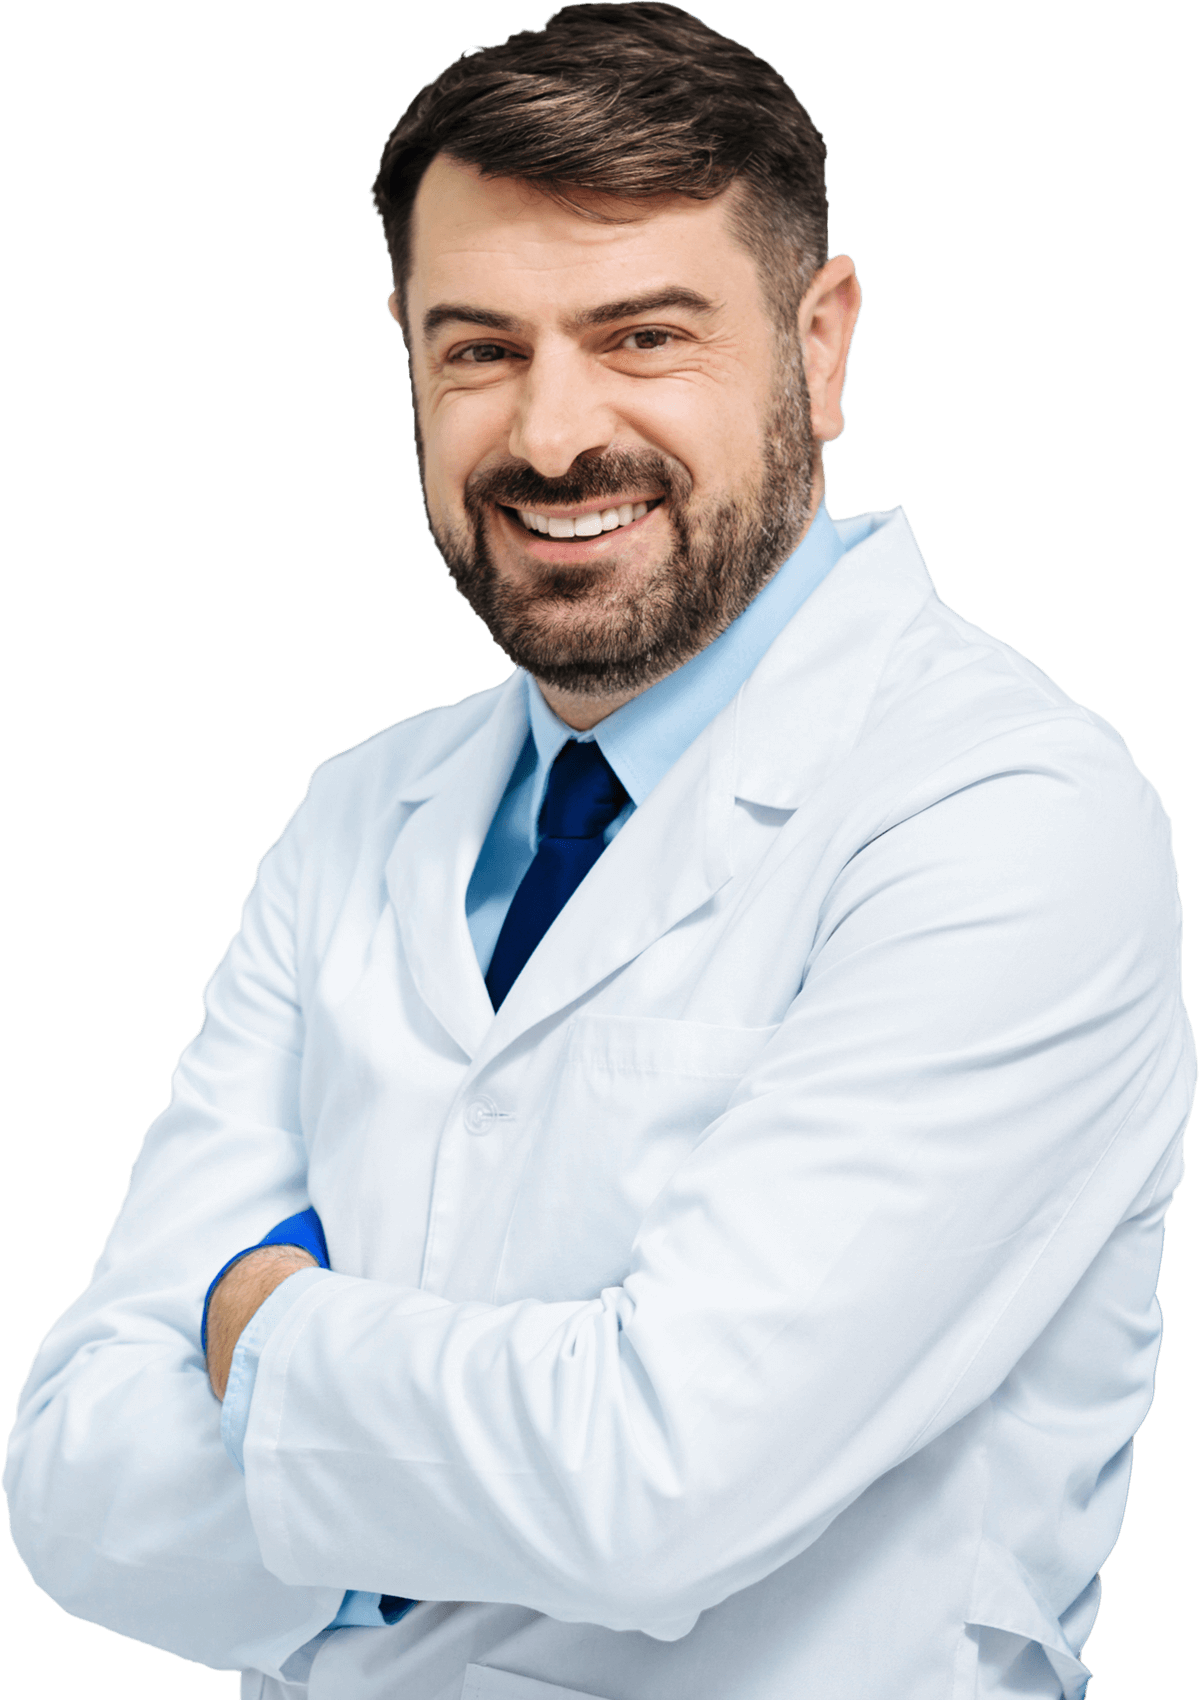 https://dentisttree.in/wp-content/uploads/2020/02/doctor-2.png